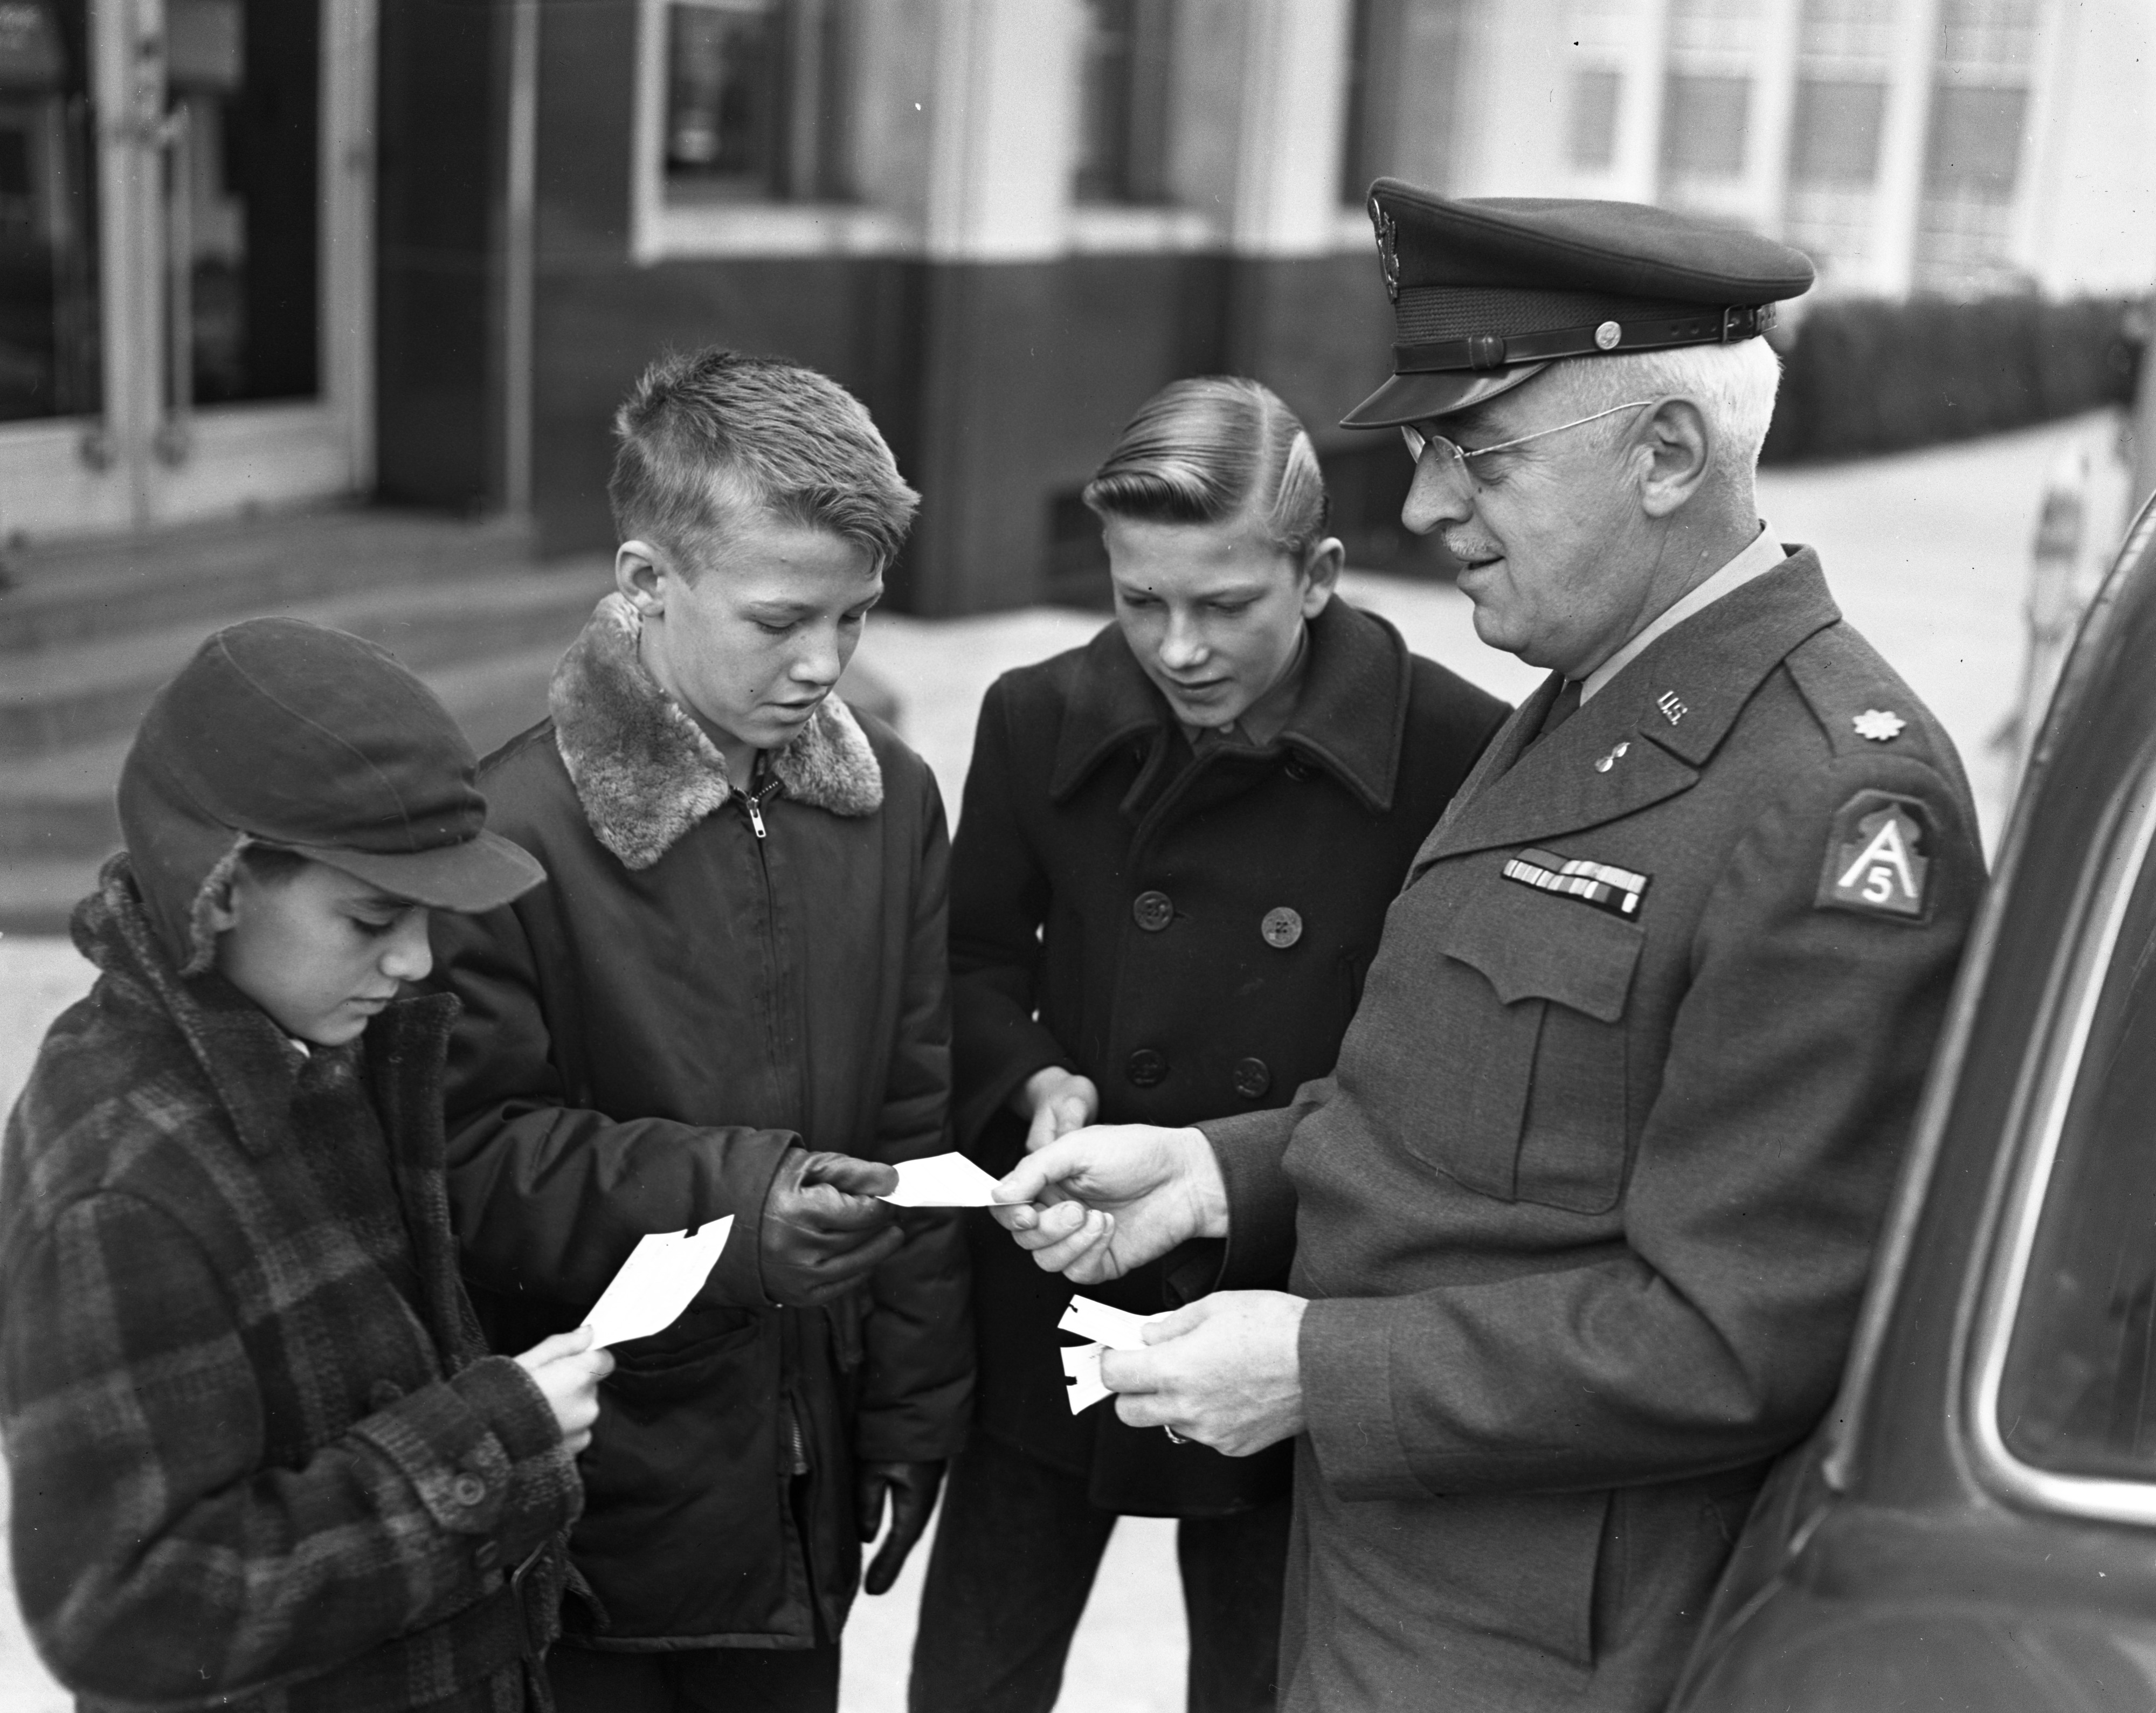 Local National Guardsman gives tickets to newsboys for circus, November 1951 image